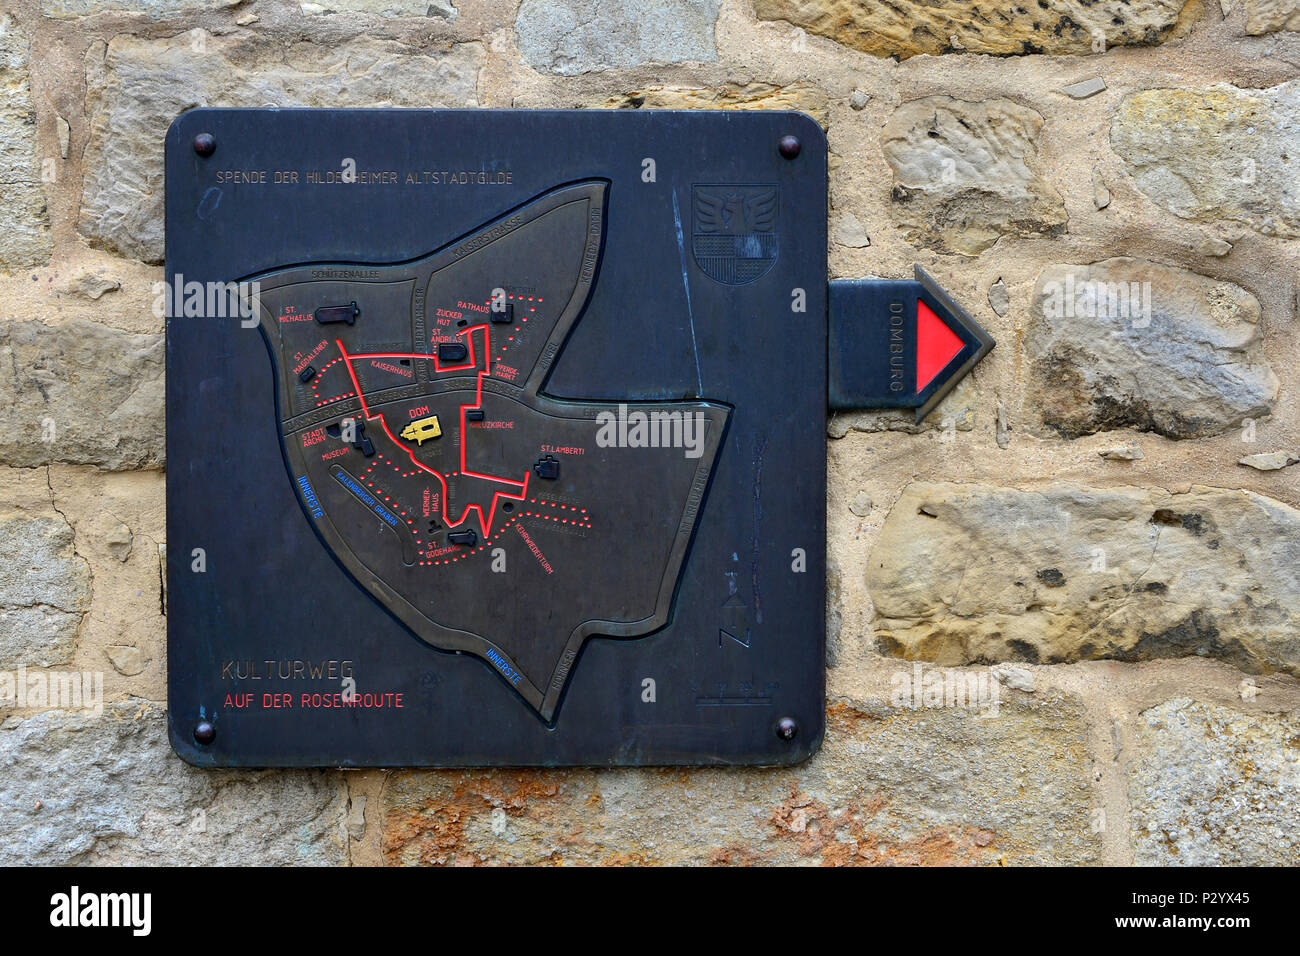 Hildesheim, Germany, signpost for the cultural itinerary on the Rosenroute - Stock Image